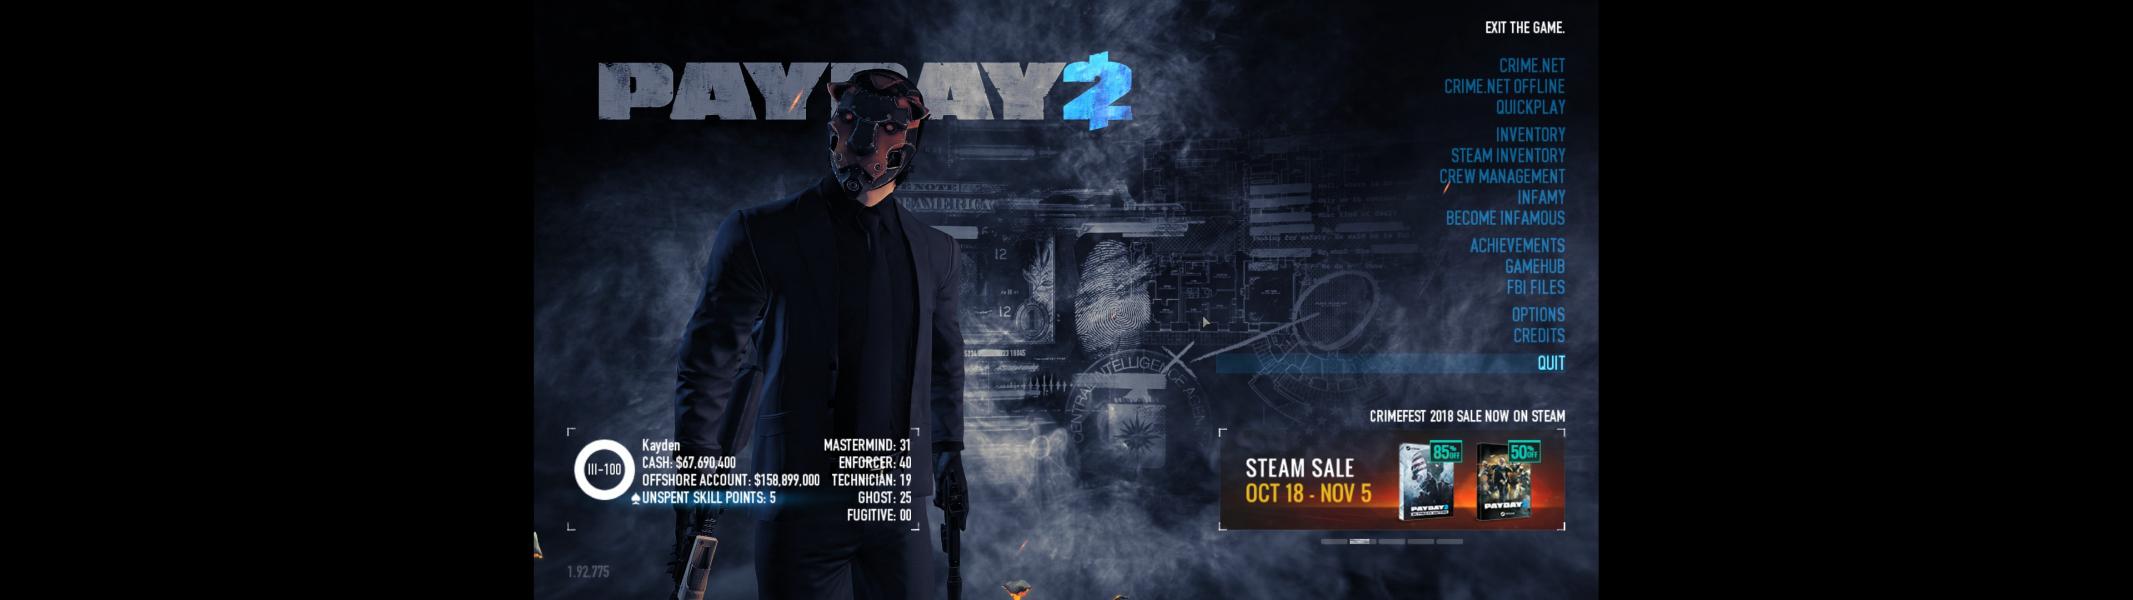 payday 2 hud mod 2018